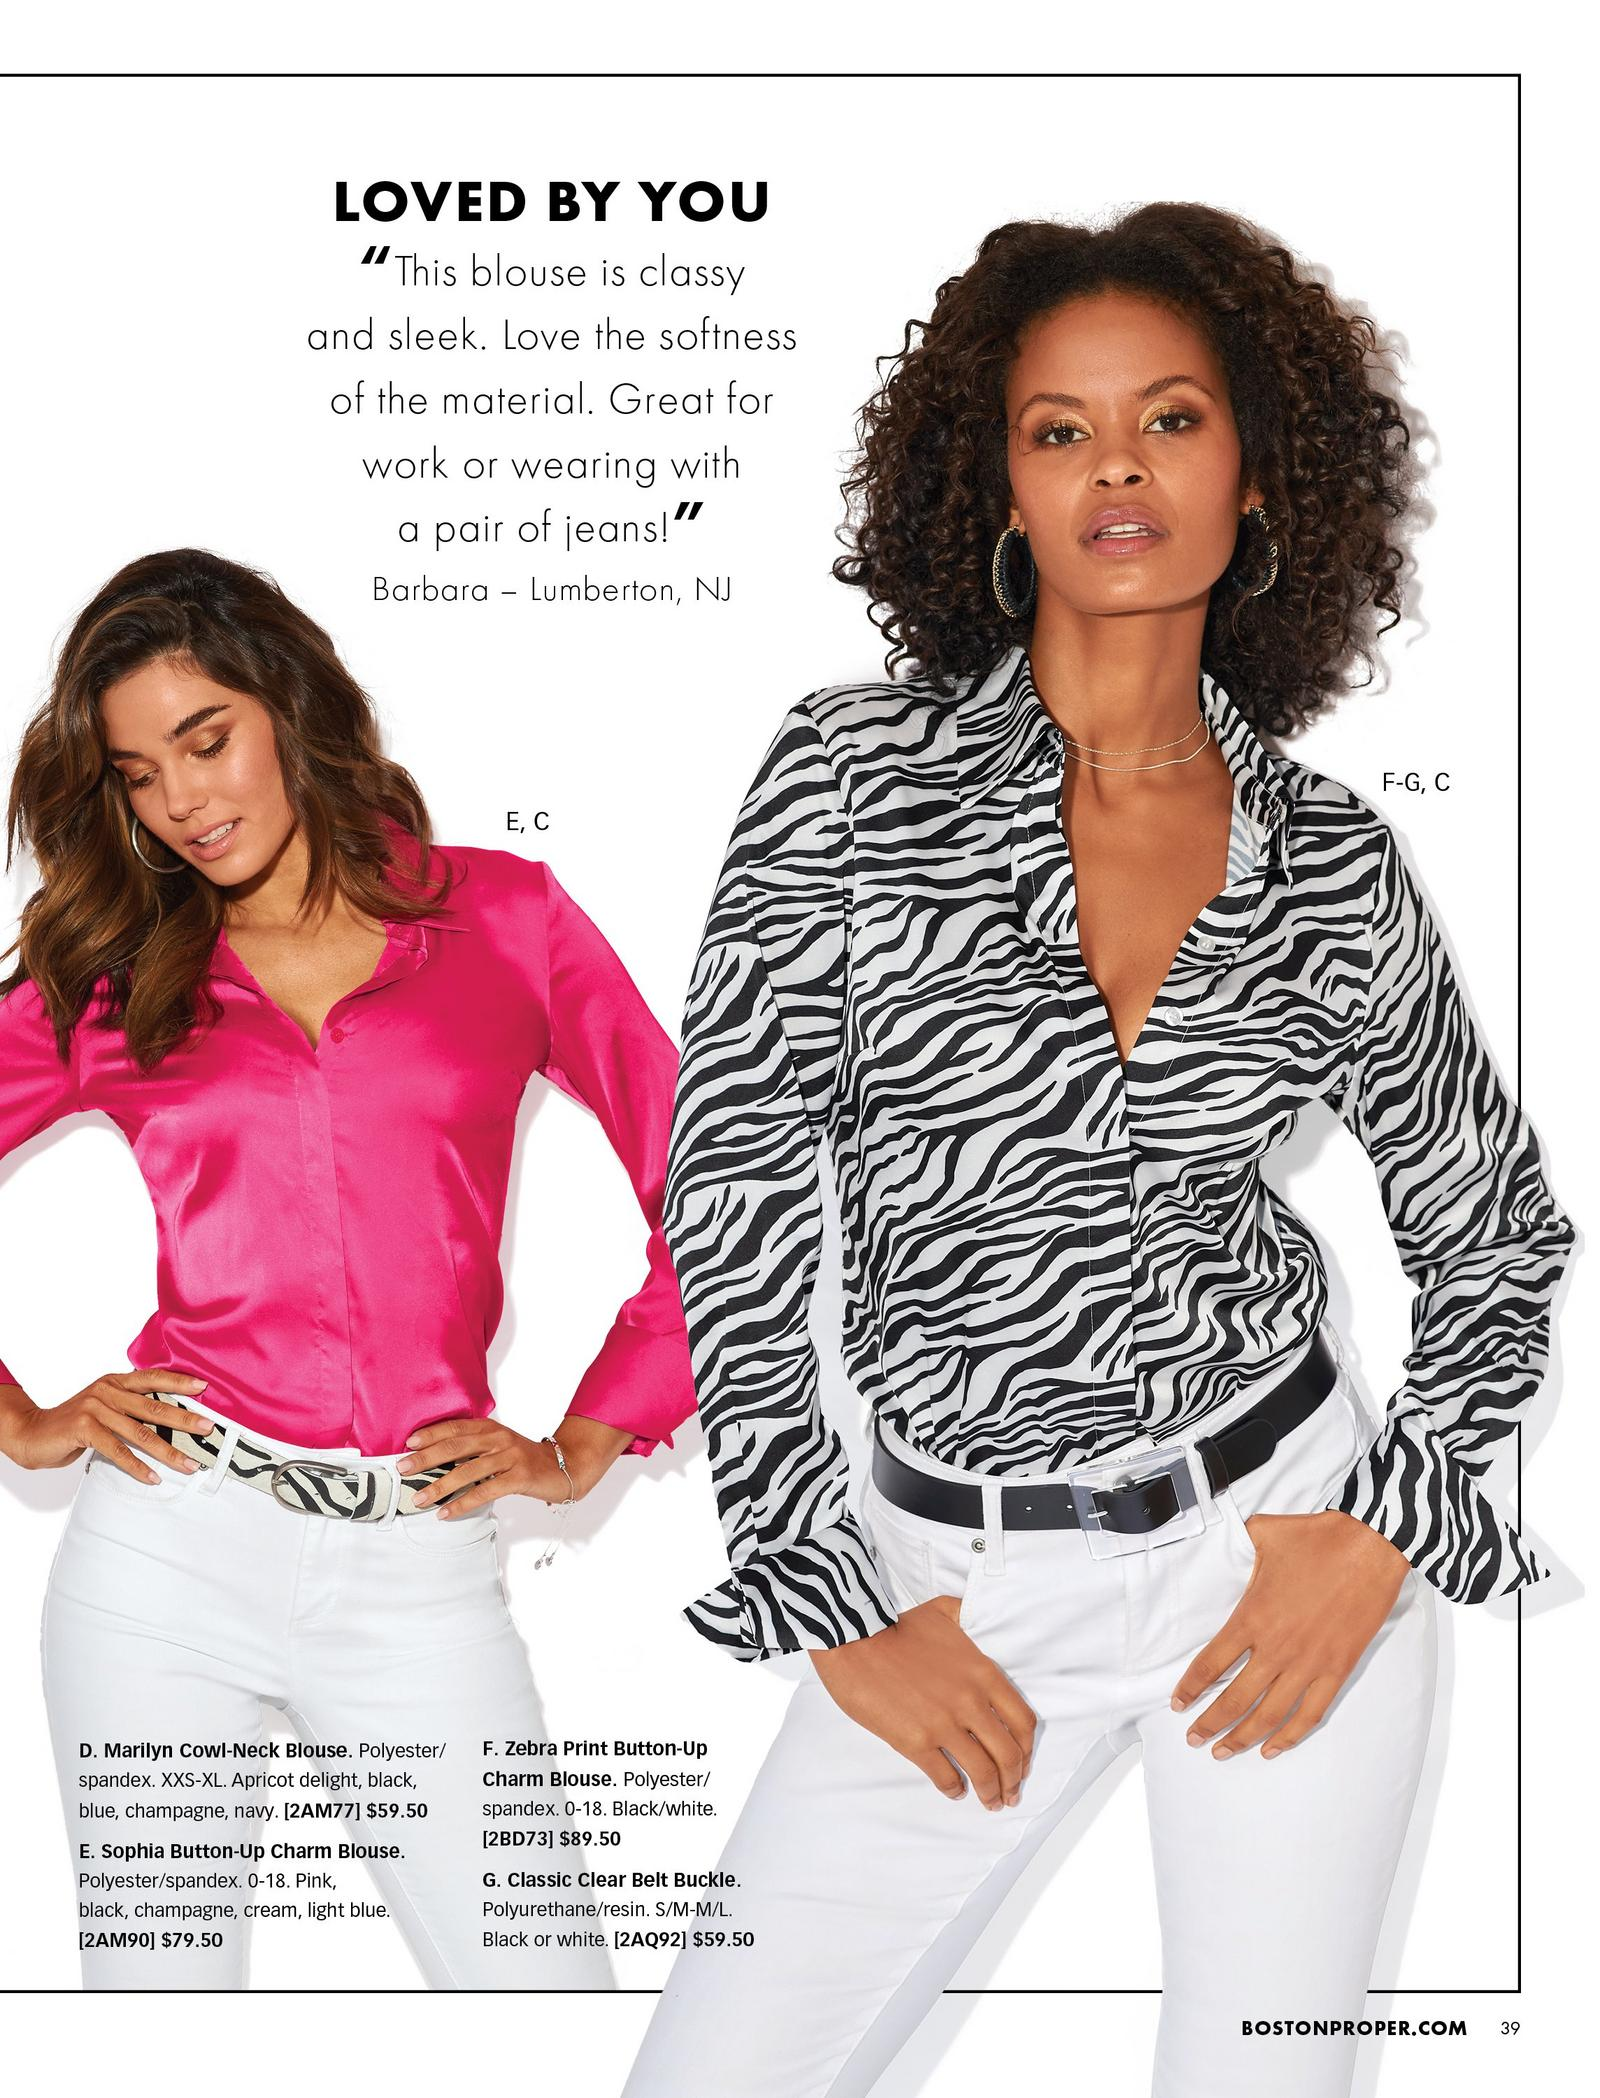 left model wearing a hot pink long-sleeve button-down blouse, zebra belt, and white jeans. right model wearing a black and white zebra print long-sleeve button-down blouse, black belt, and white jeans.